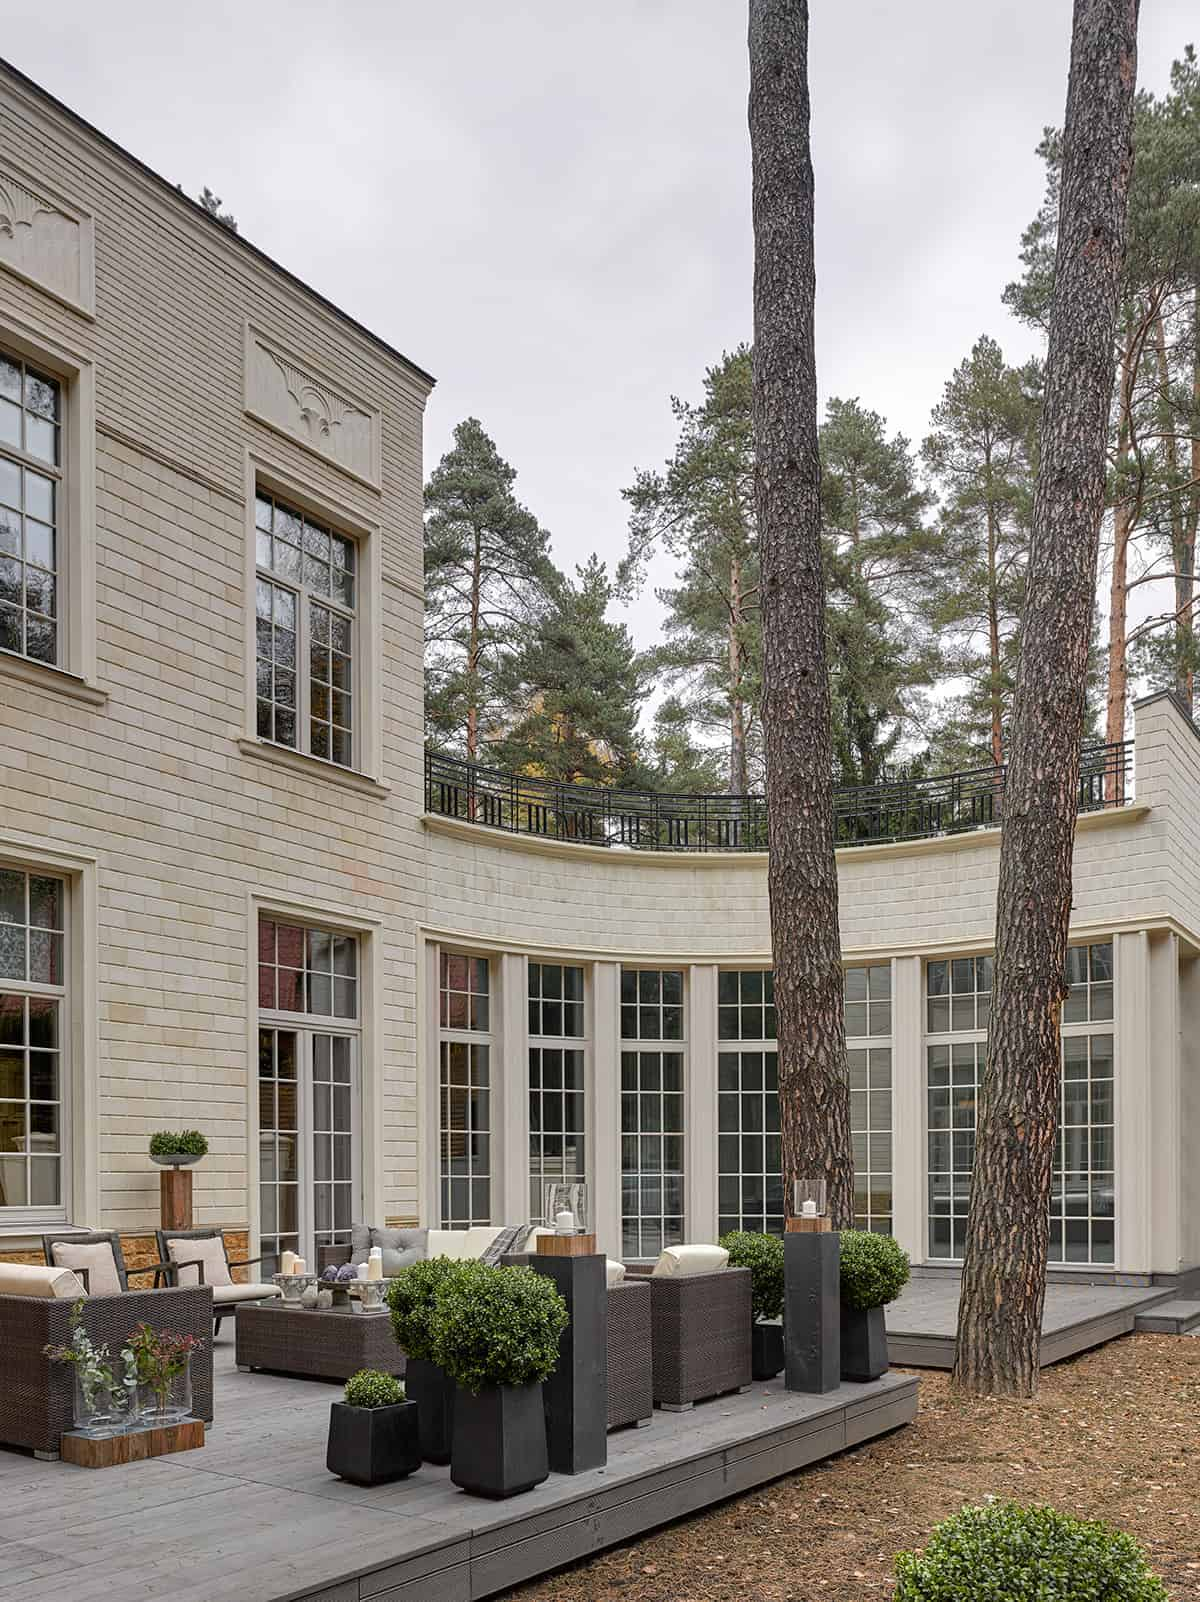 This area outside the tall windows of the house has a wooden platform over the land that has a pair of tall trees taller than the house. The sitting area is adorned with plants and shrubs in various sizes of black pots and glass vases.